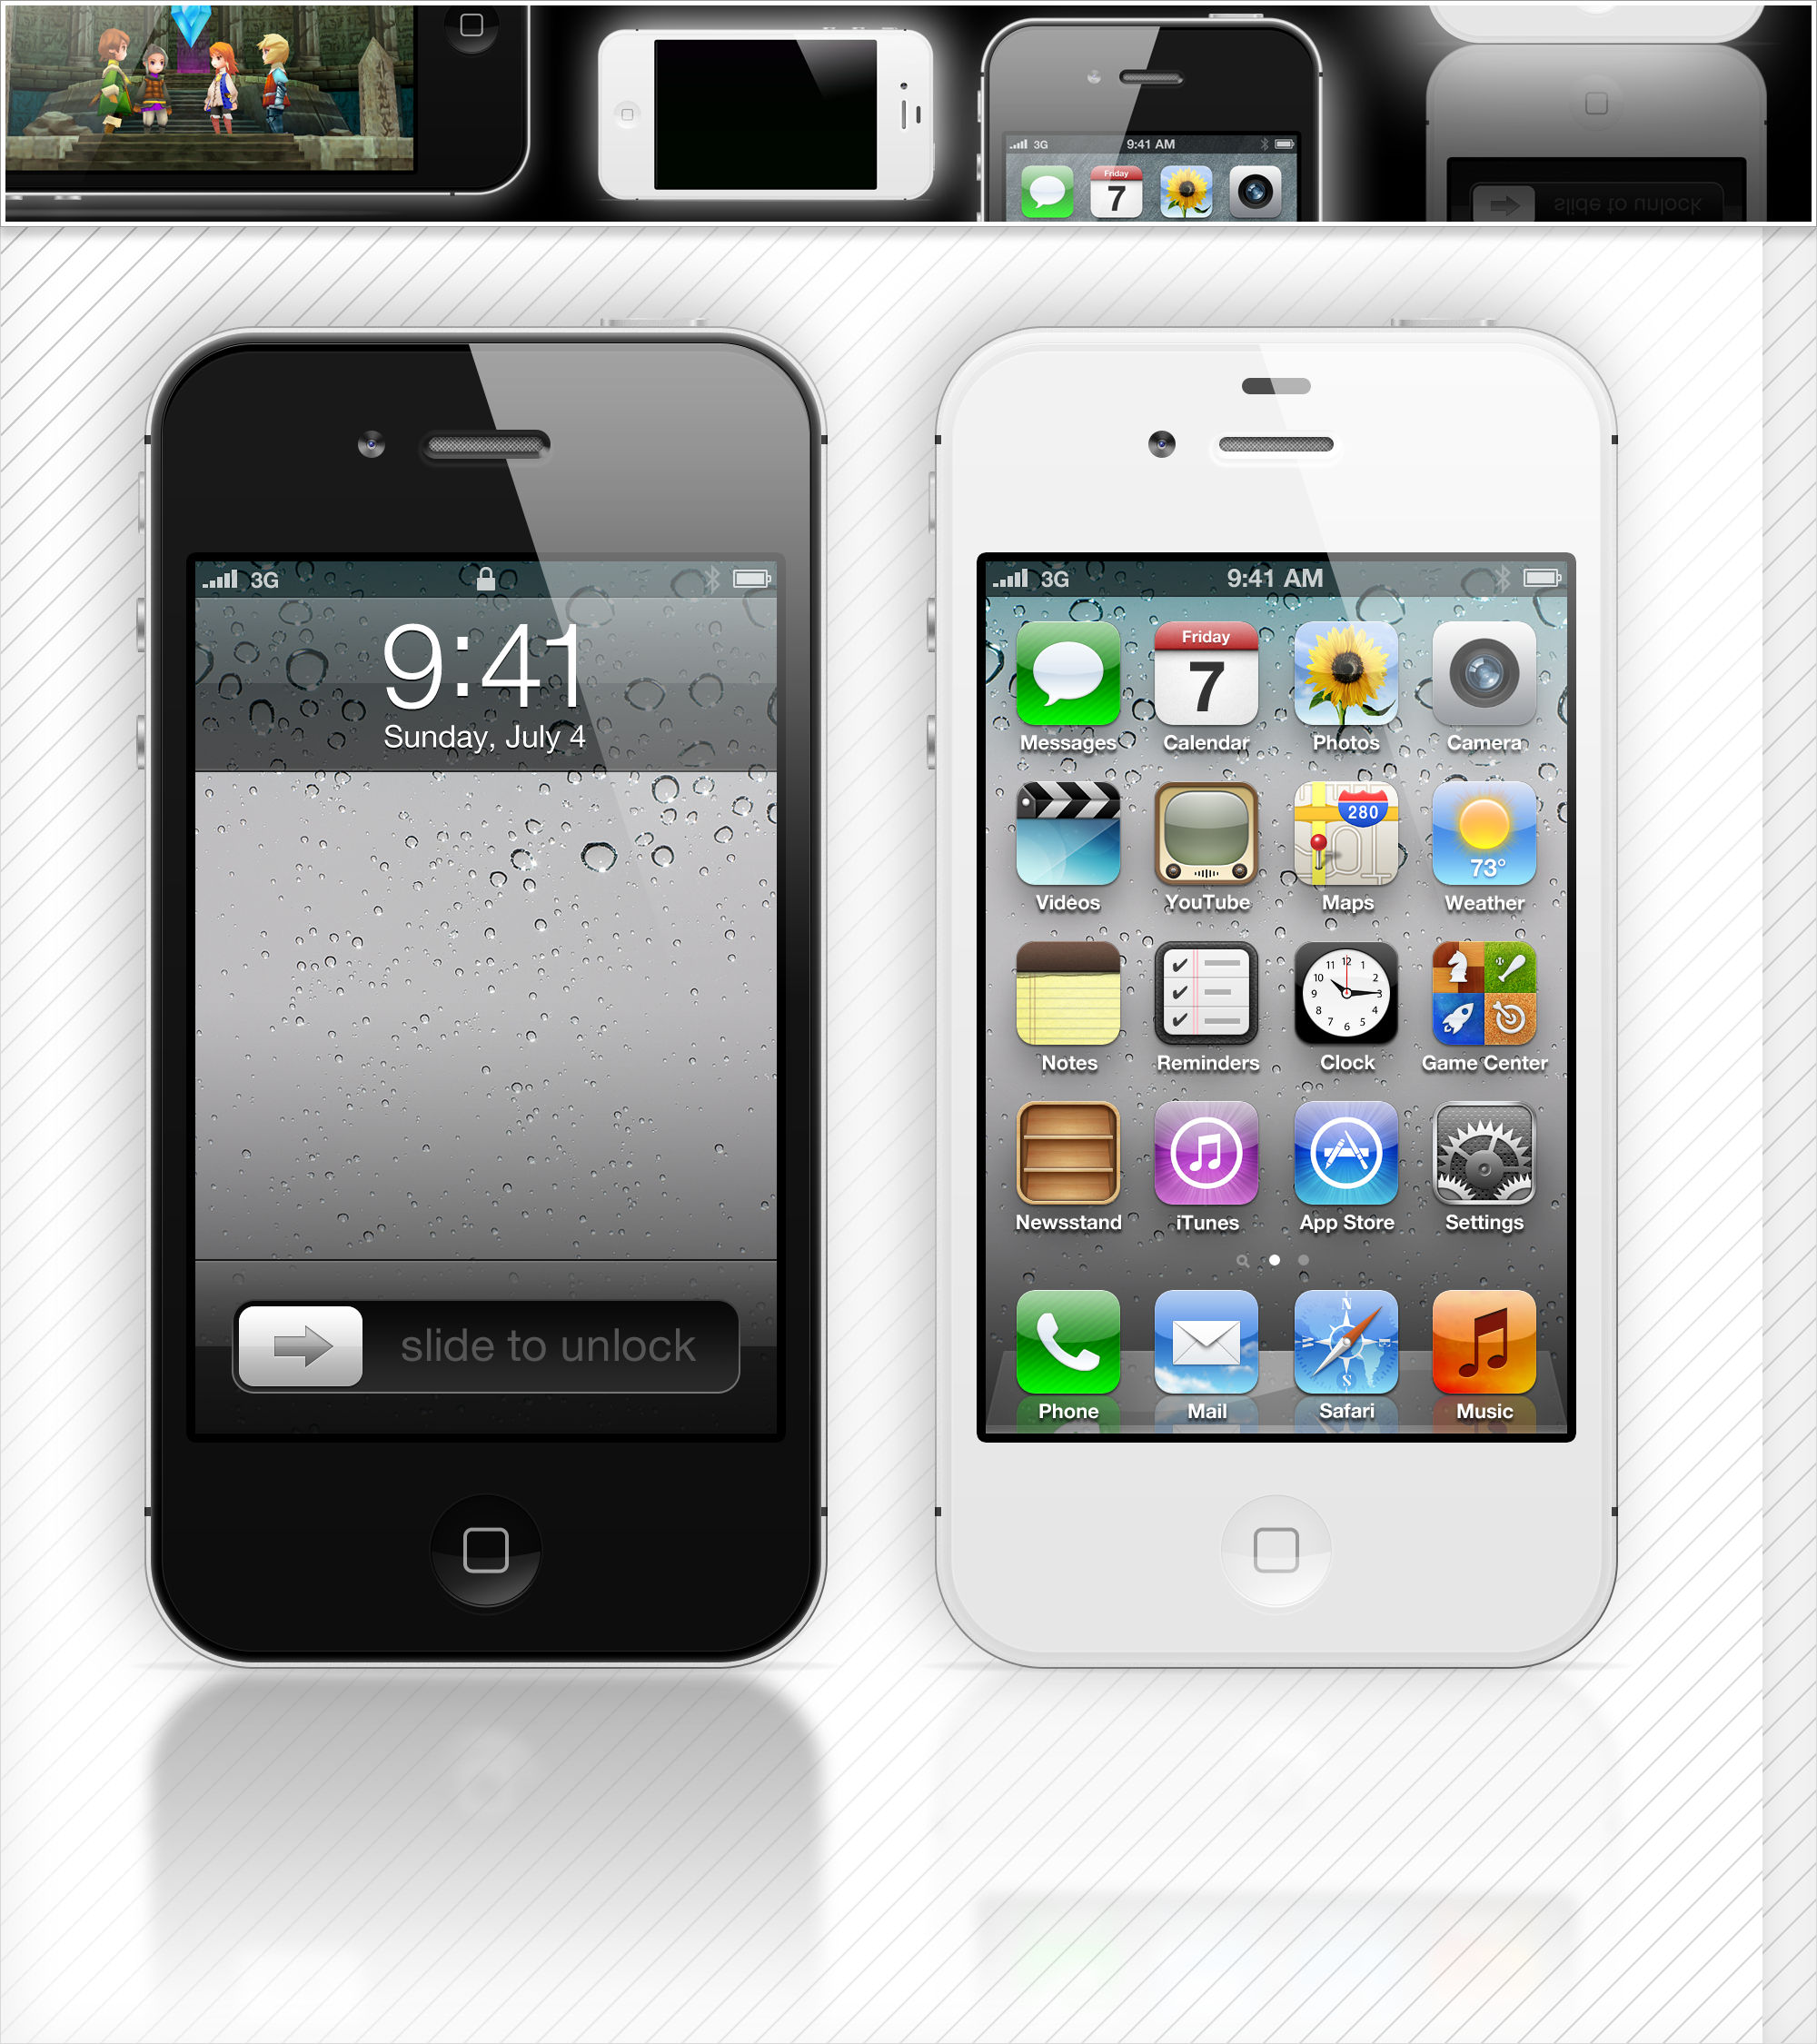 iPhone 4S PSD by iEatSoxLikeAnimal 2000x2250